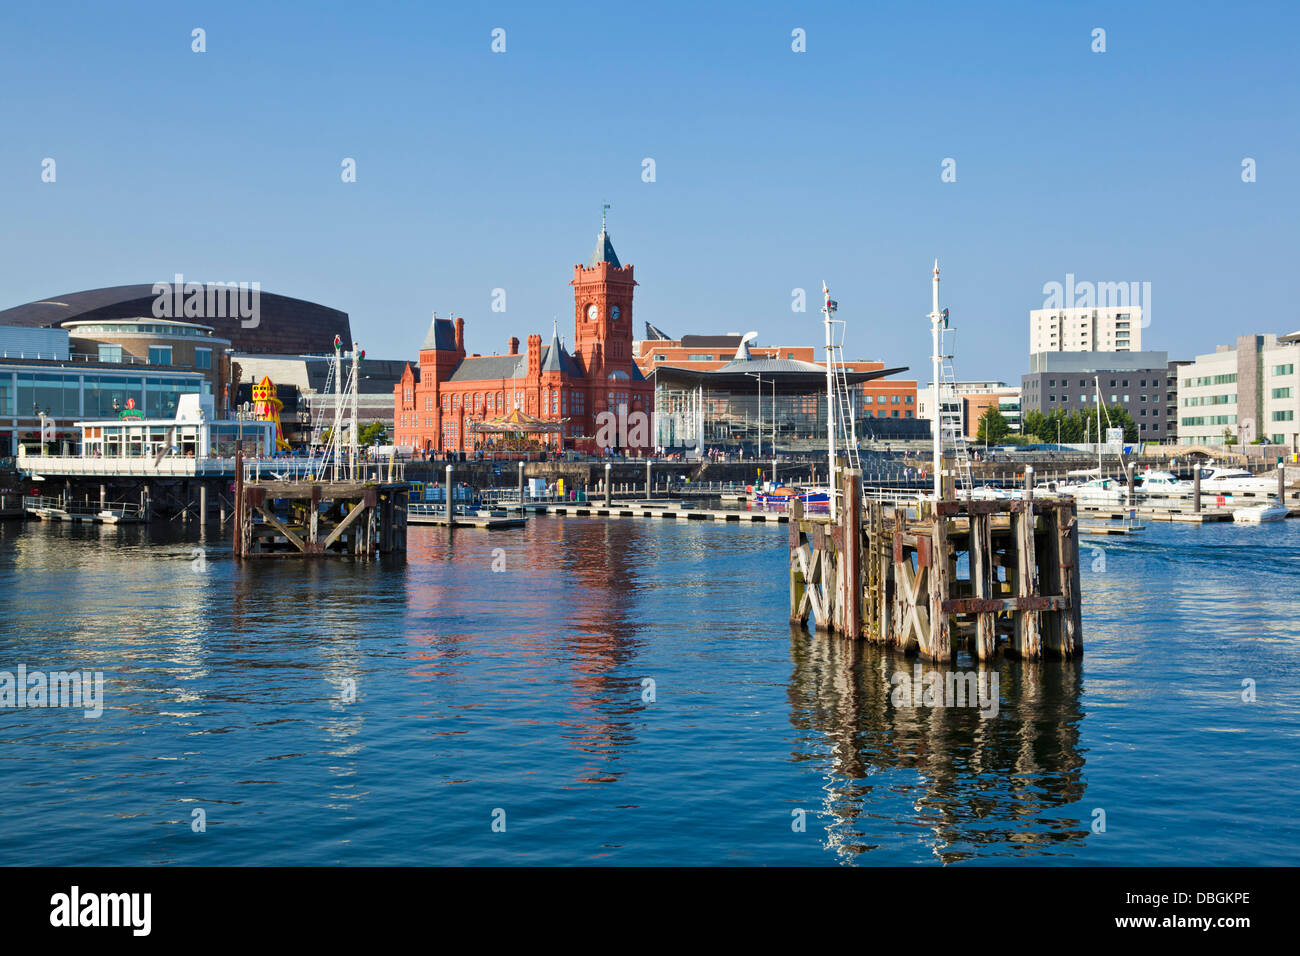 The restored Pierhead building  in Cardiff Bay Cardiff South Glamorgan South Wales GB UK EU Europe - Stock Image